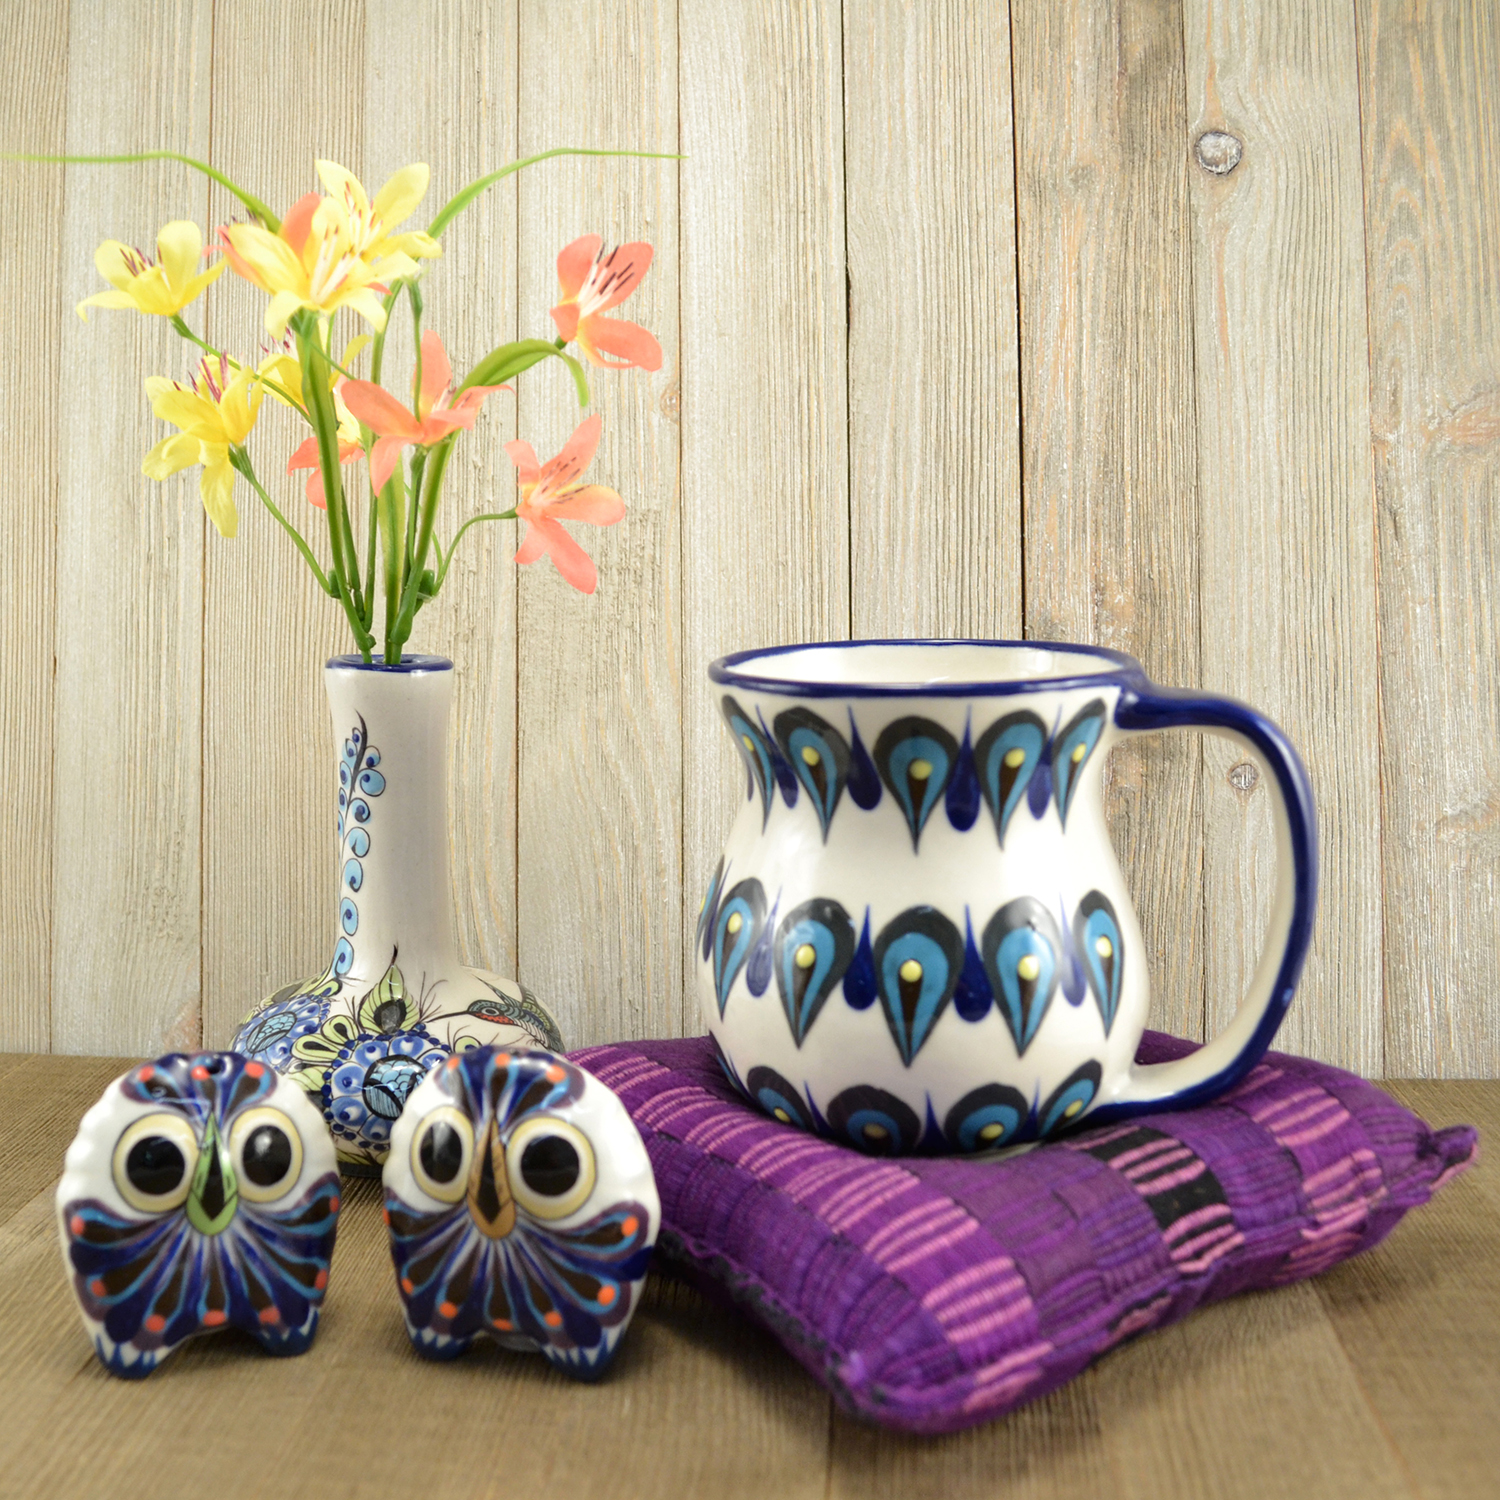 Cup Warmer/Trivet with San Antonio Coffee Mug, Owl Salt and Pepper Shakers, and Wild Bird Bud Vase